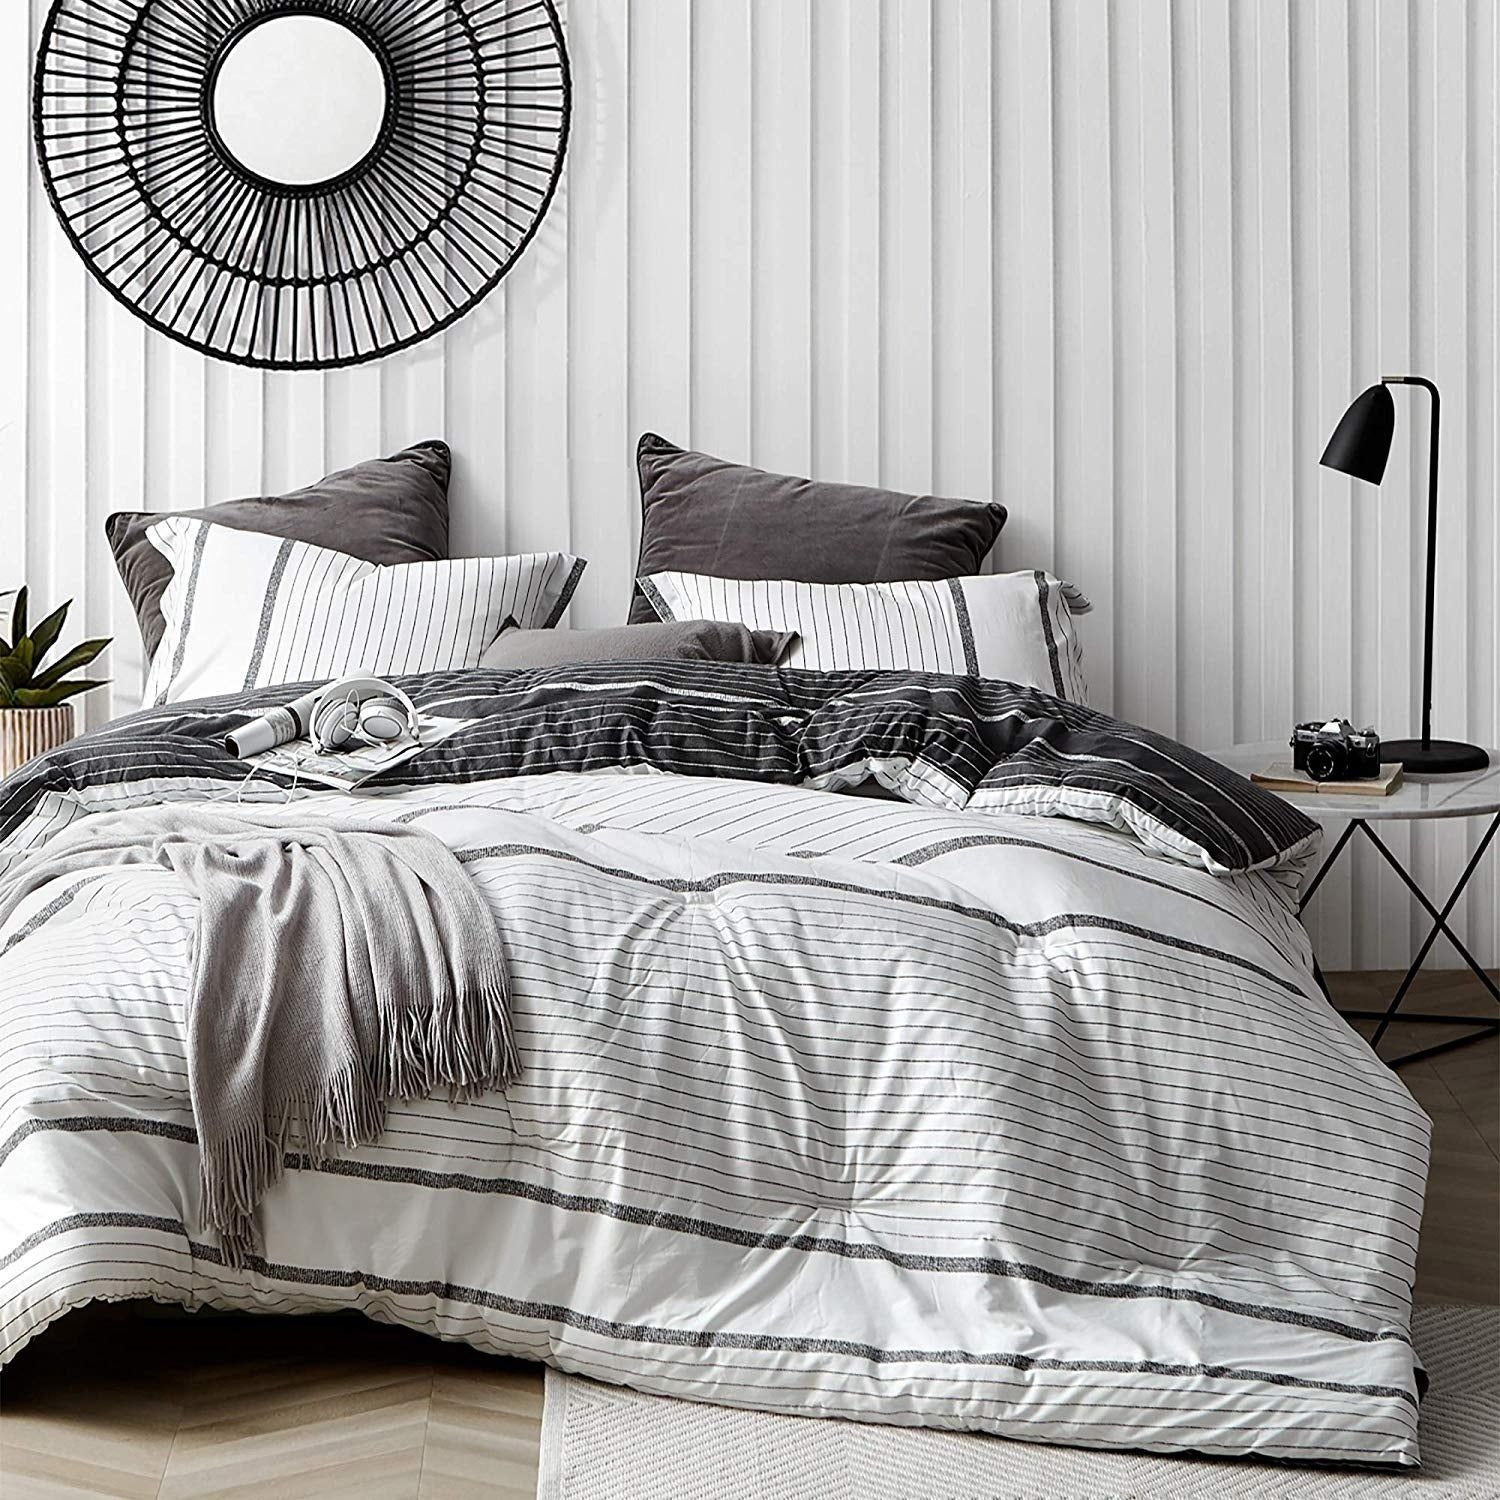 Overstock Com Online Shopping Bedding Furniture Electronics Jewelry Clothing More Black White And Grey Bedroom Black Comforter Comforter Sets